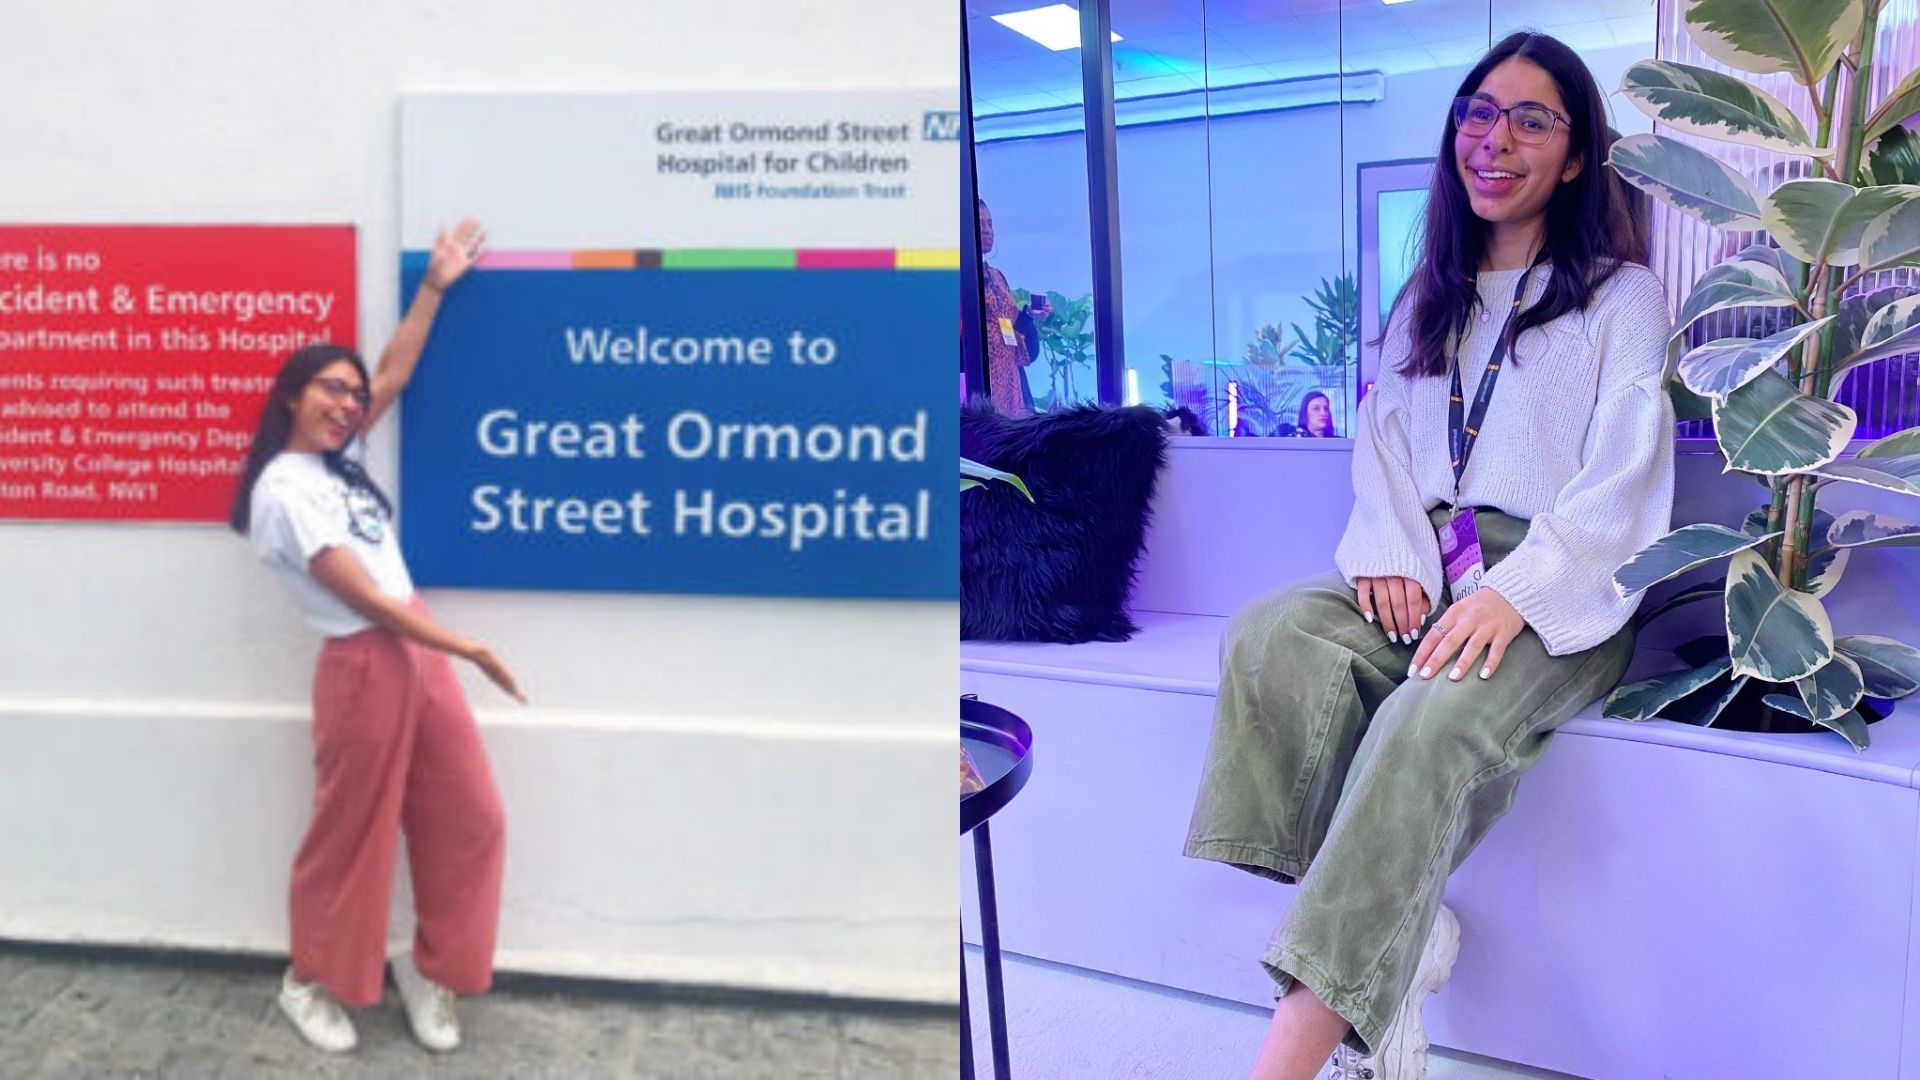 On the right: A woman, early 20s, with long dark hair and glasses, wearing a white jumper, green jeans, and a work lanyard, is sitting on a white bench next to a plant with an office space in the background. On the left: A woman in her late teens, wearing a t-shirt and pink jogging bottoms, points to an NHS sign which says: ''Welcome to Great Ormond Street Hospital''